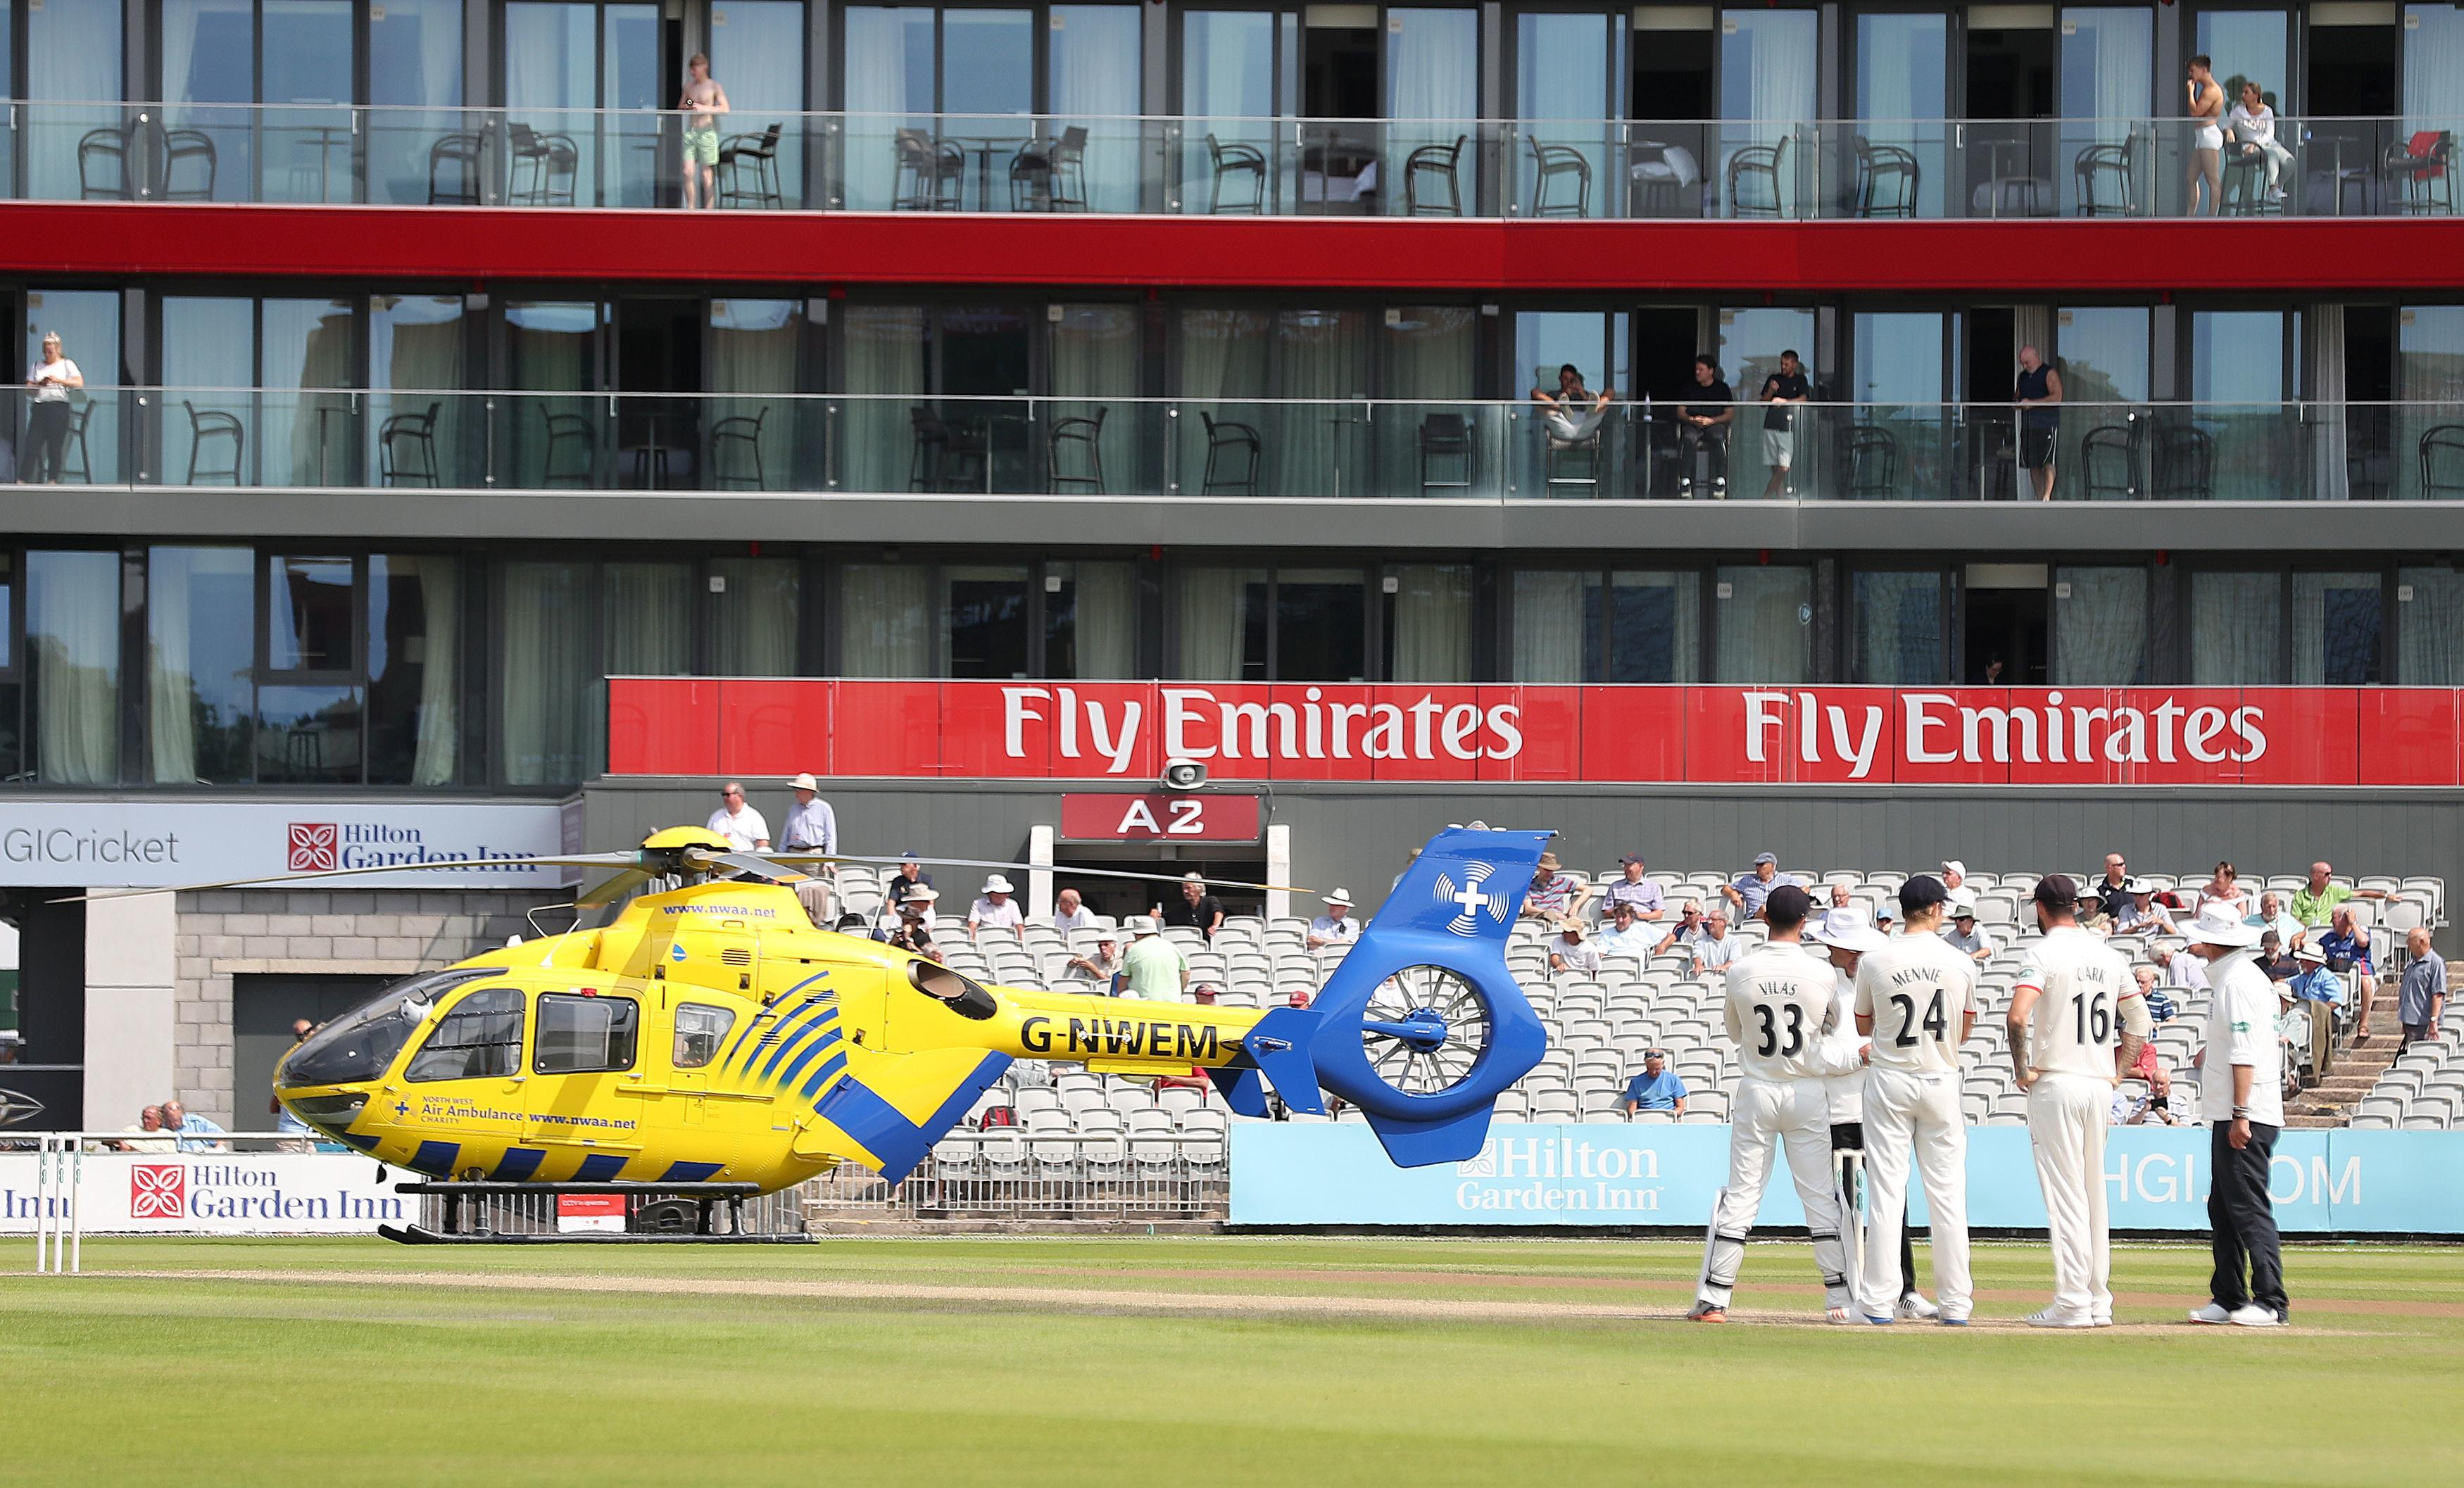 An air ambulance was forced to land at Old Trafford to help an ill fan